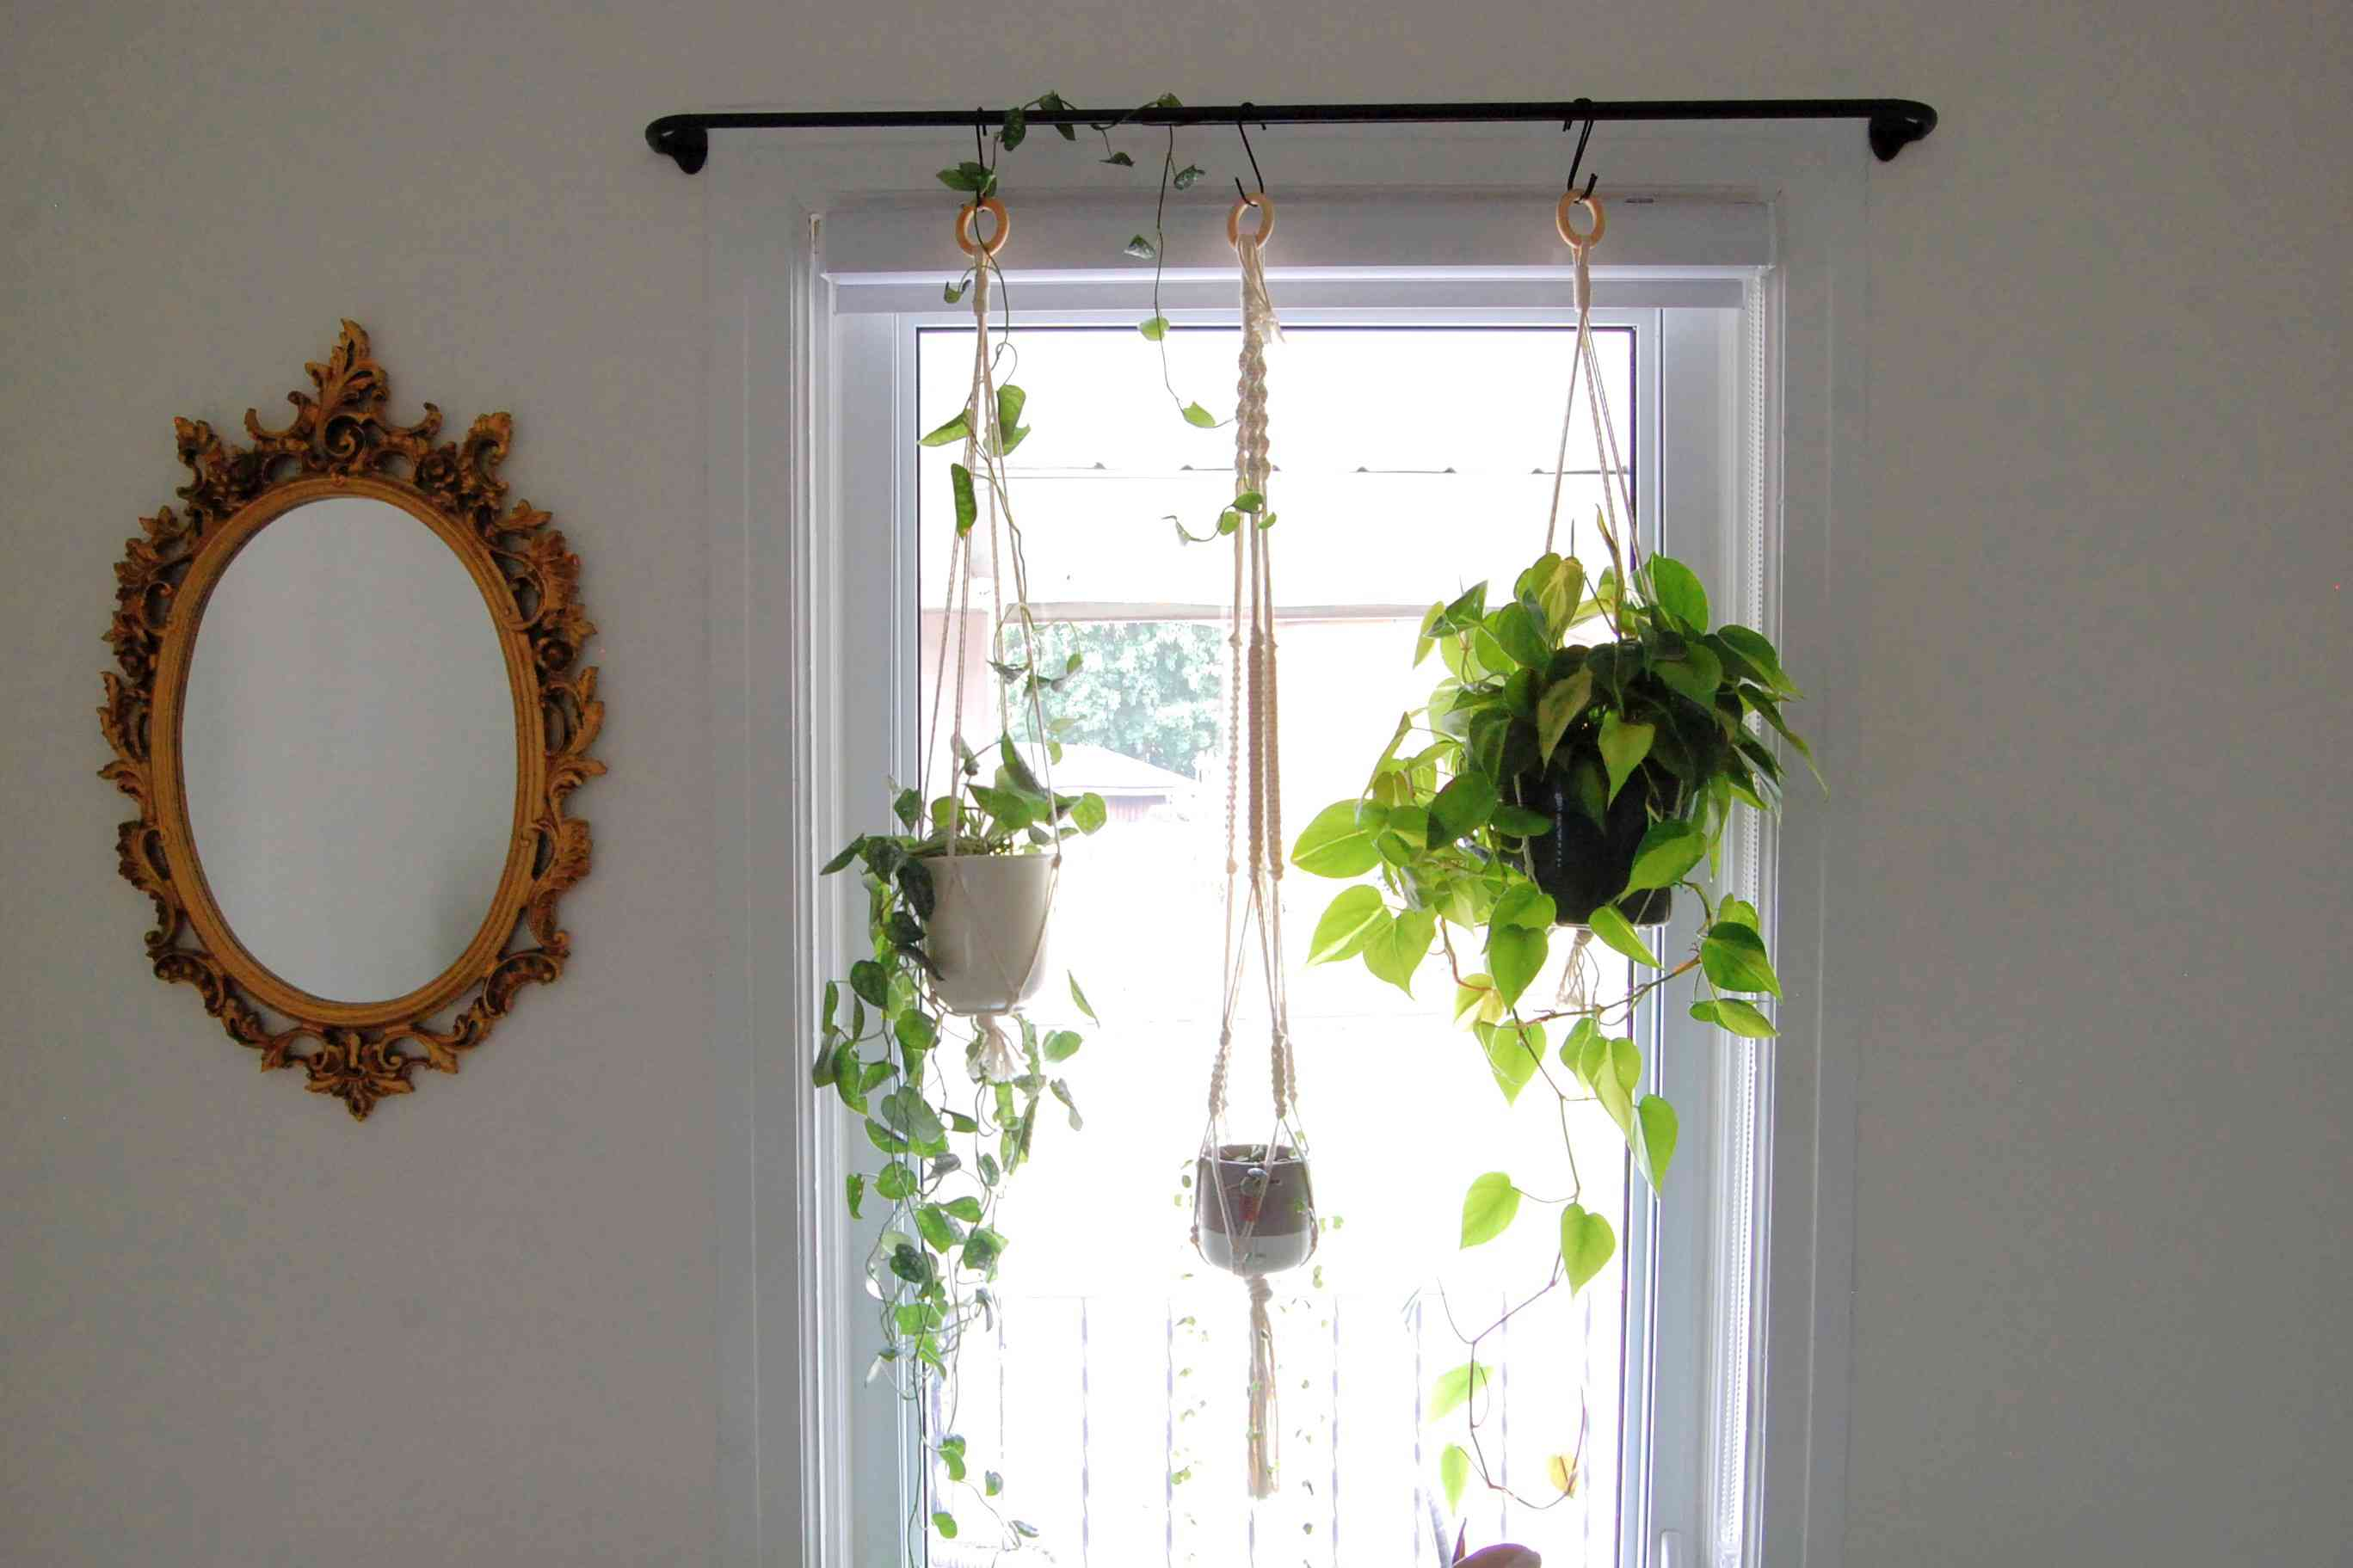 3 hanging plants hang from a curtain rod in front of a bright window.